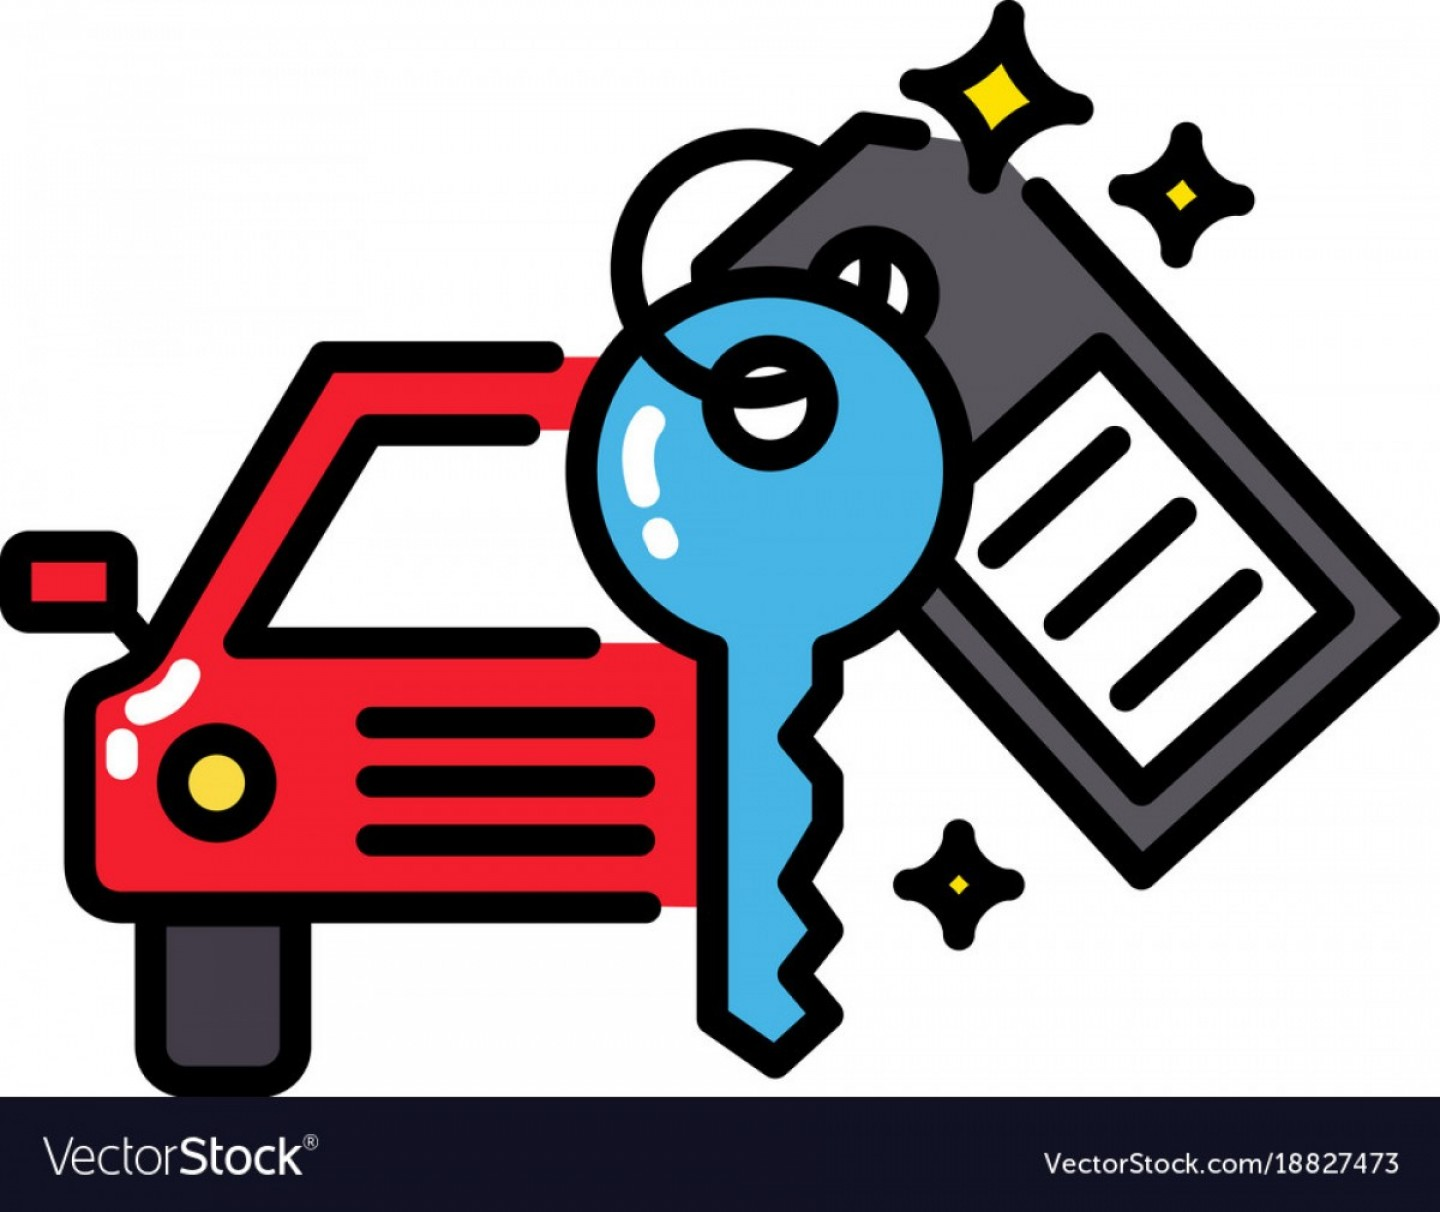 Dispicable Me Vectors House: Car Rental Or Sharing Economy Concept Icon Vector